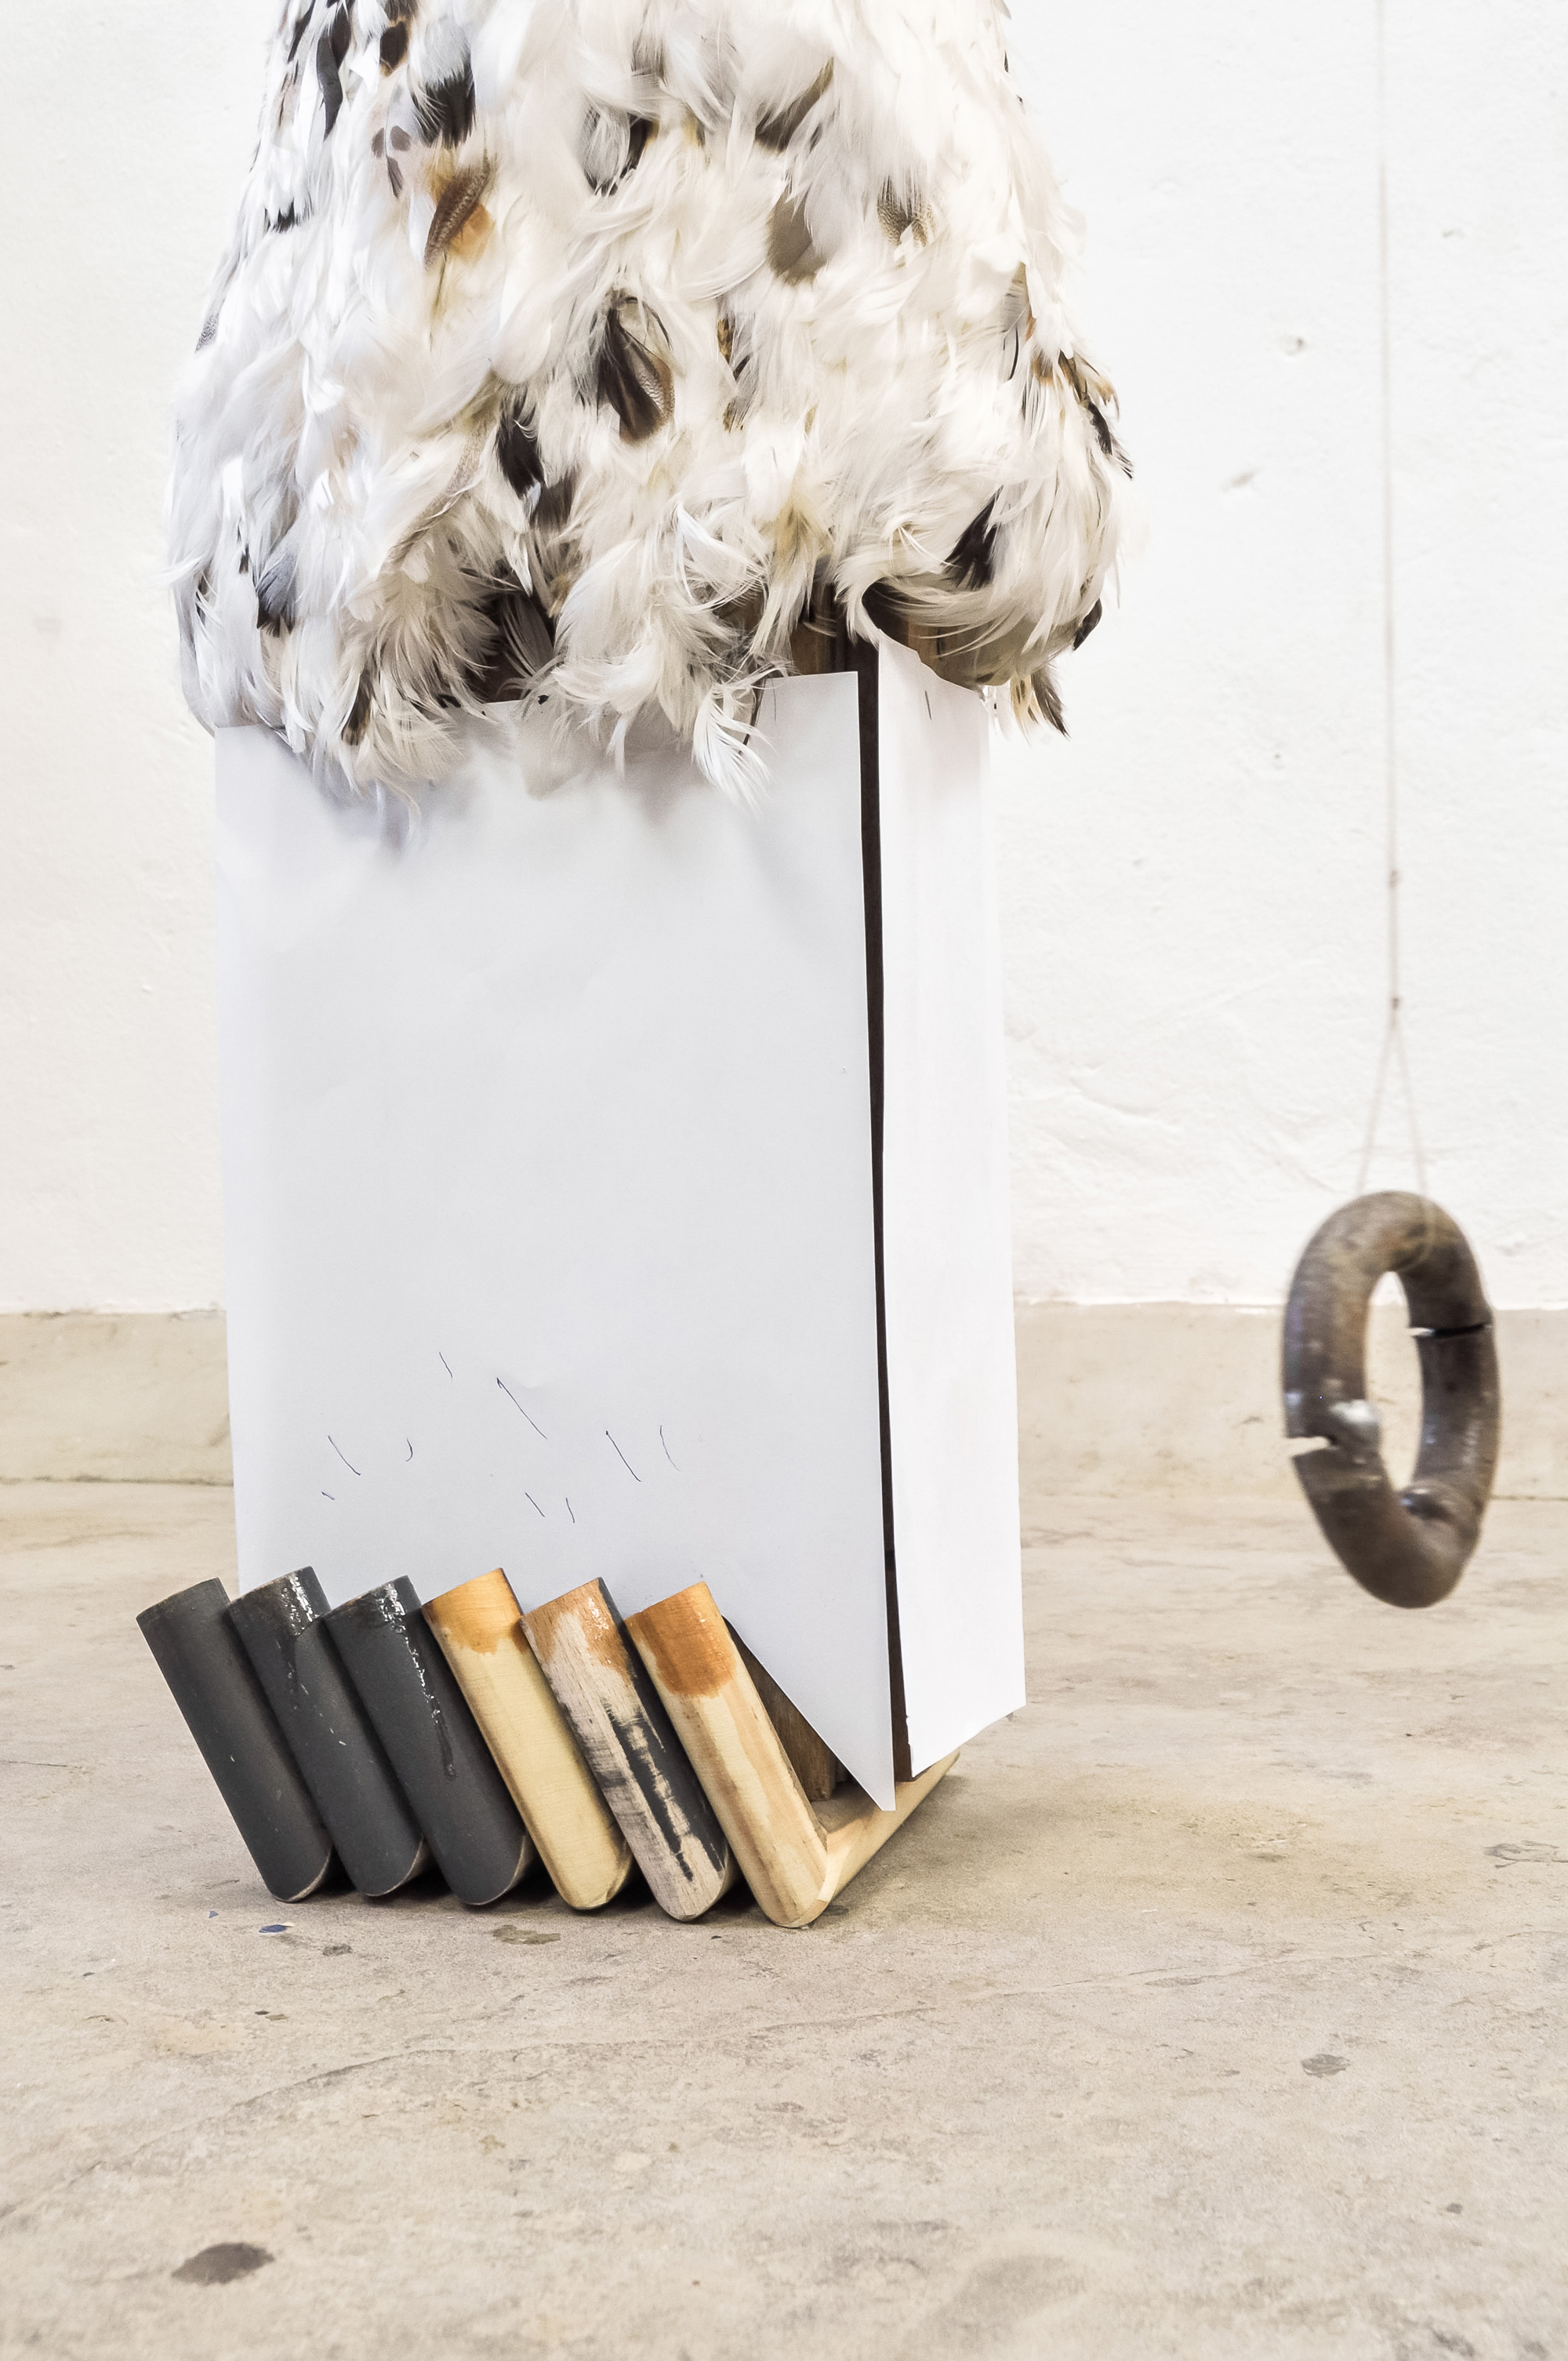 Untitled  │ metal, wood, feather, paper │ 2012-20 │ 92cm x 40cm x 60cm